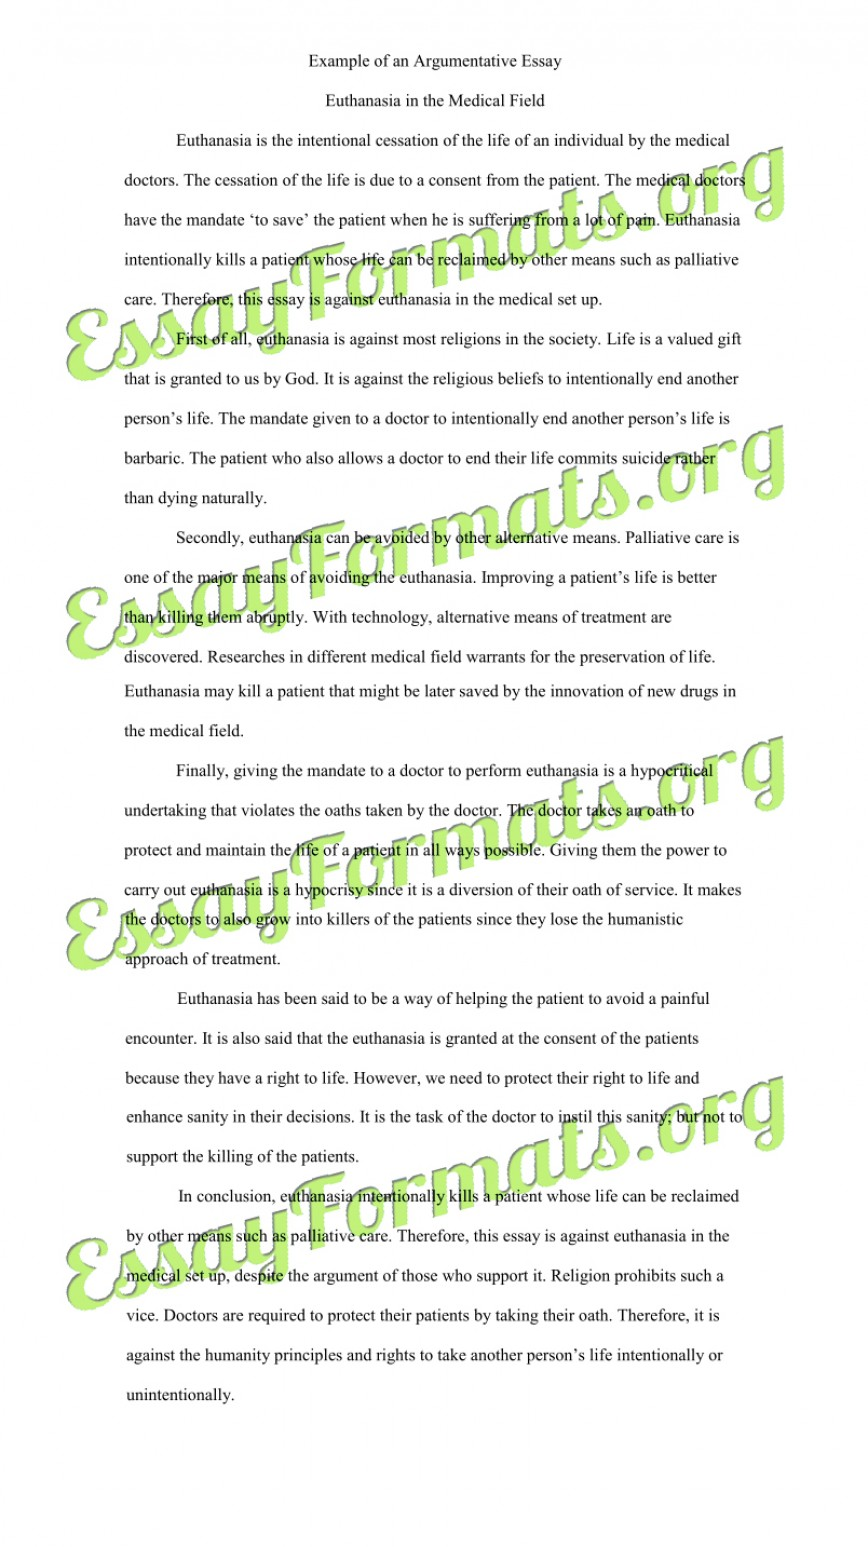 005 Essay Example Euthanasia Argumentative Counter Argument Persuasive Examples L Stirring Outline Against Pdf